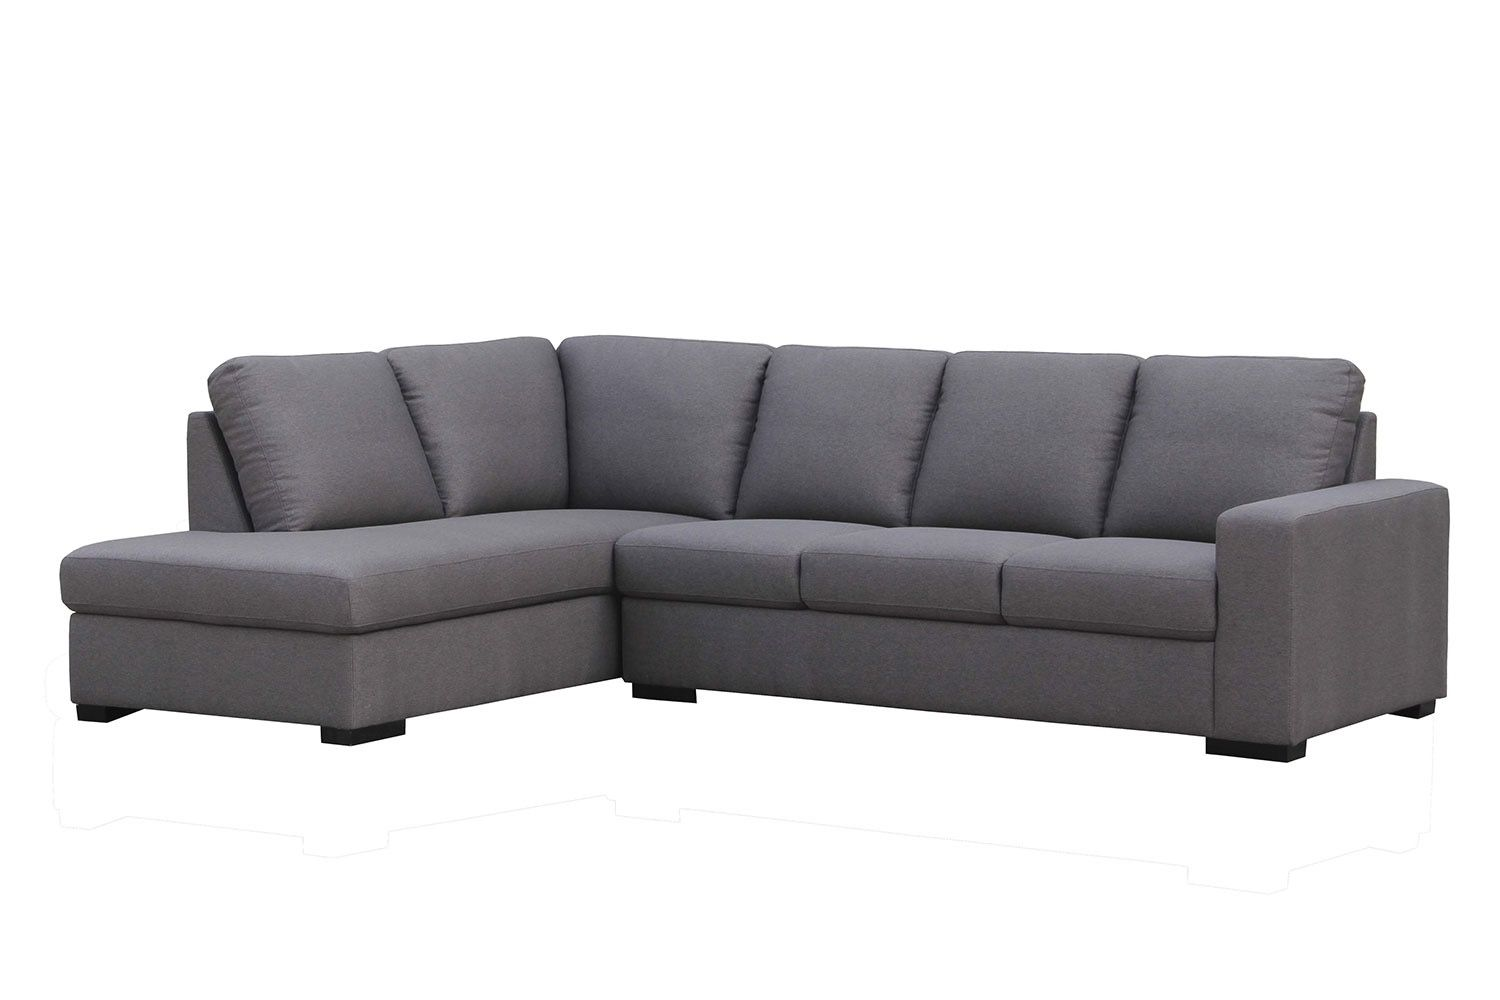 Joseph 4 Seater Fabric Chaise Sofa. Harvey Norman | Couches ...